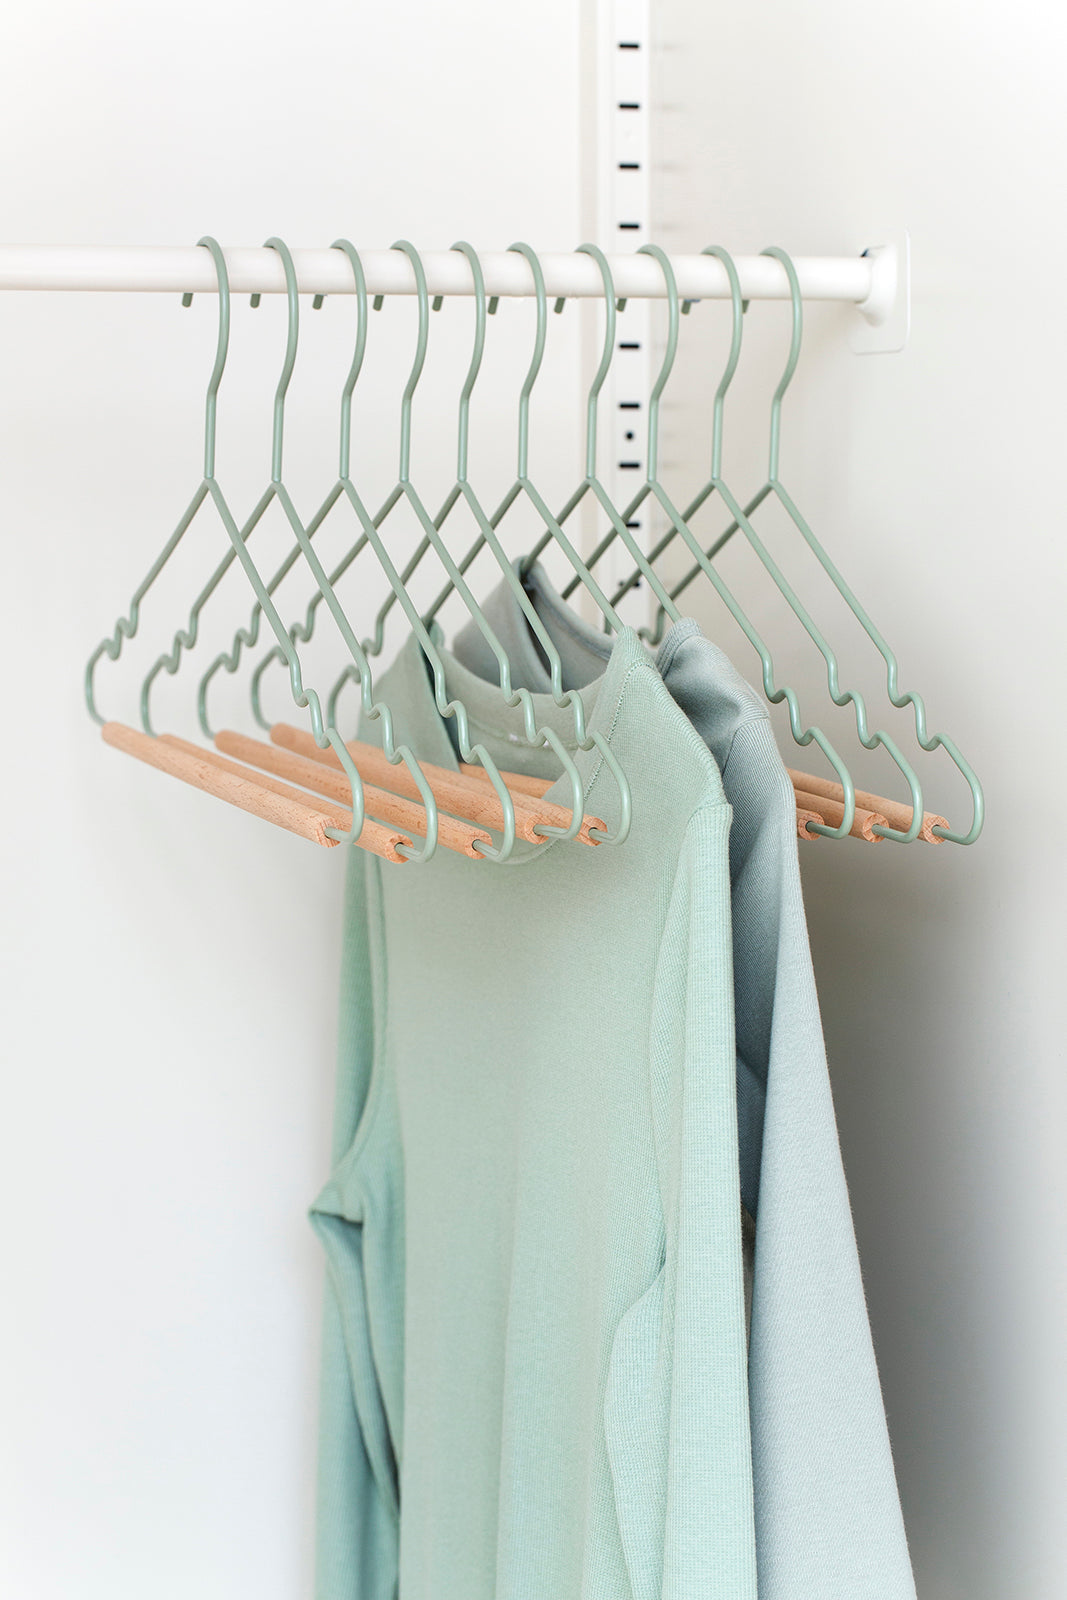 Adult Top Hangers in Sage